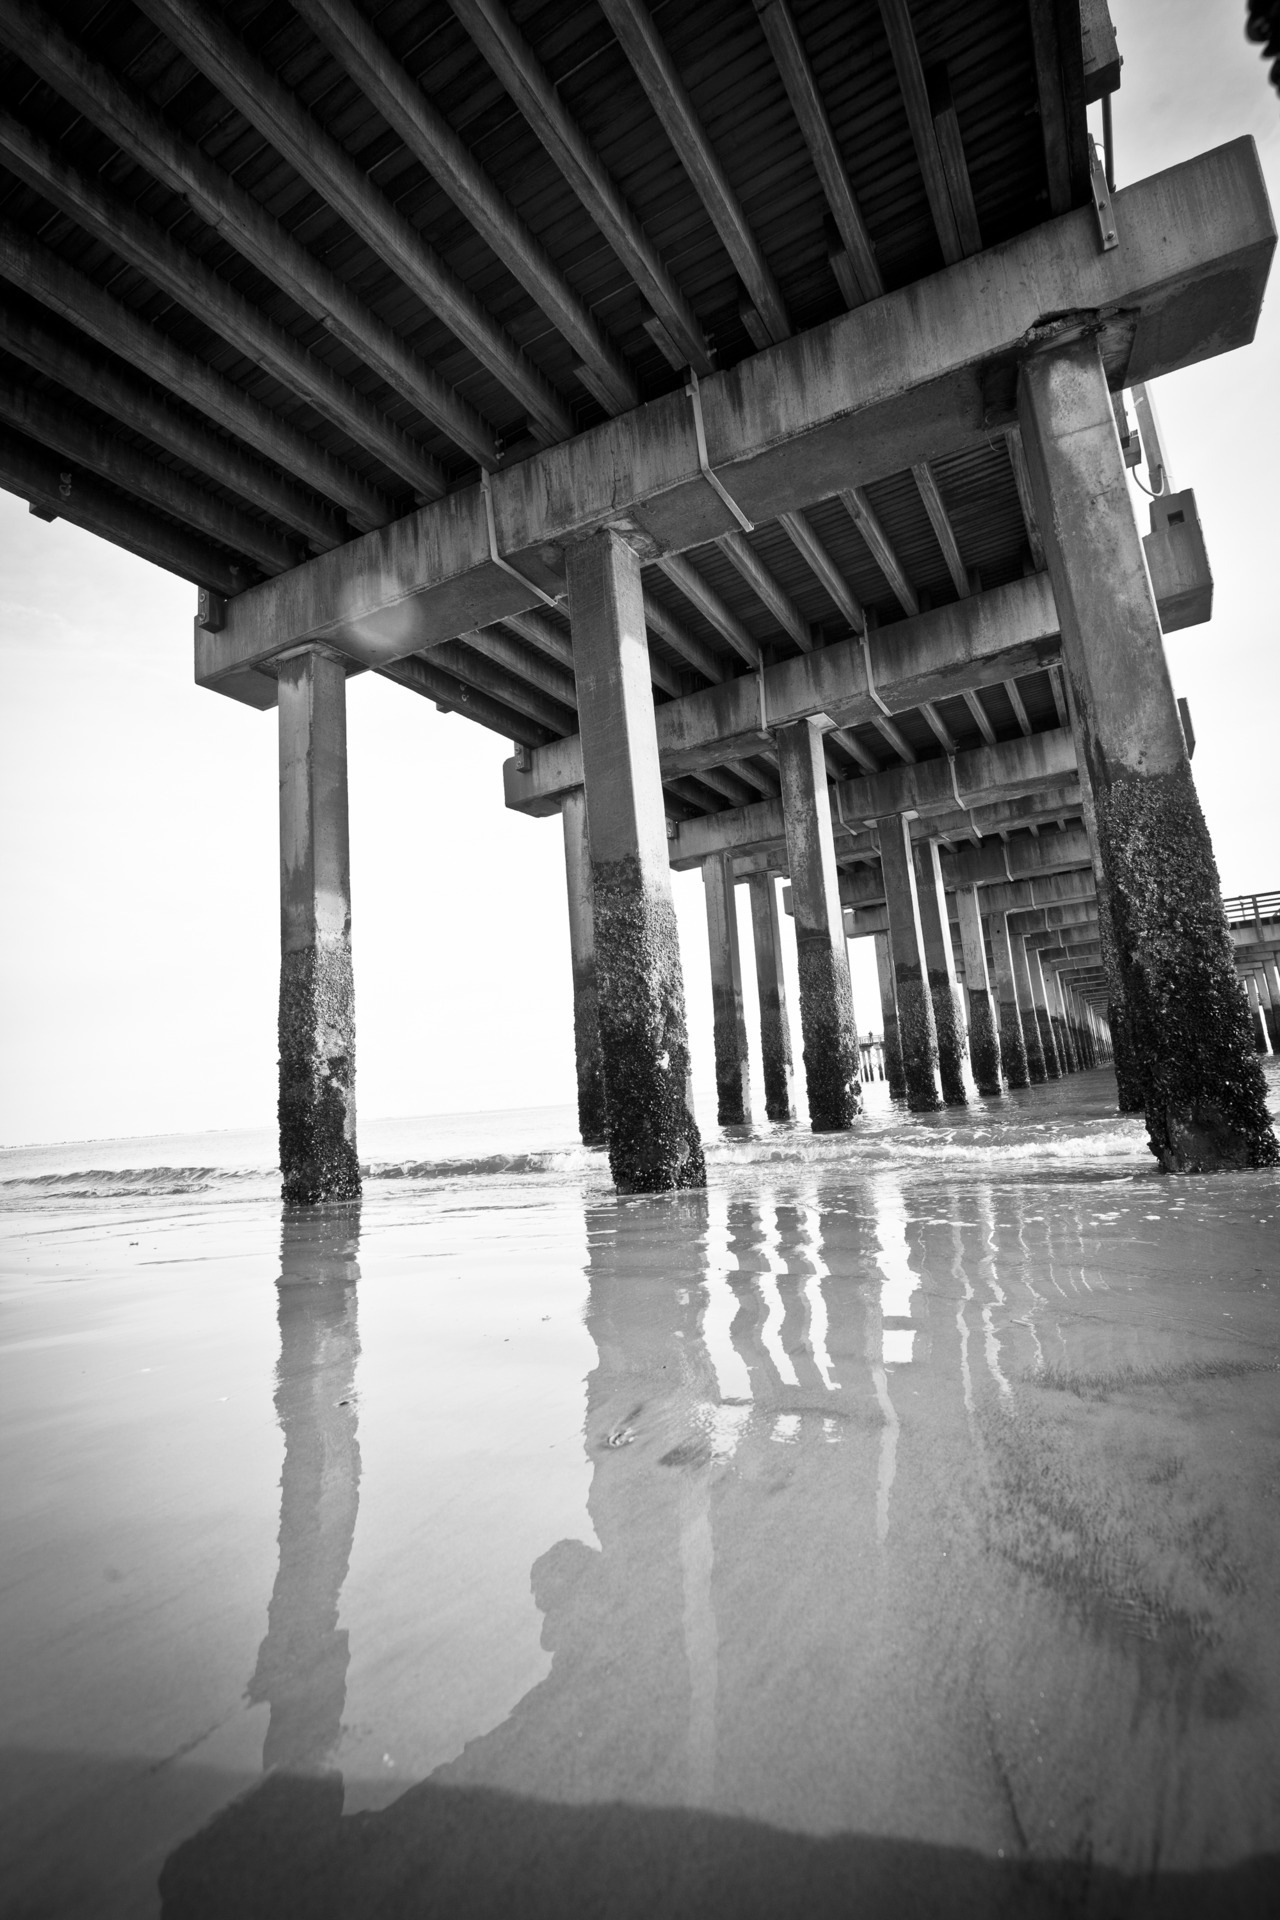 Under the pier. Cony Island Beach Canon 5D Mark II, Tokina 16-28mm f/2.8